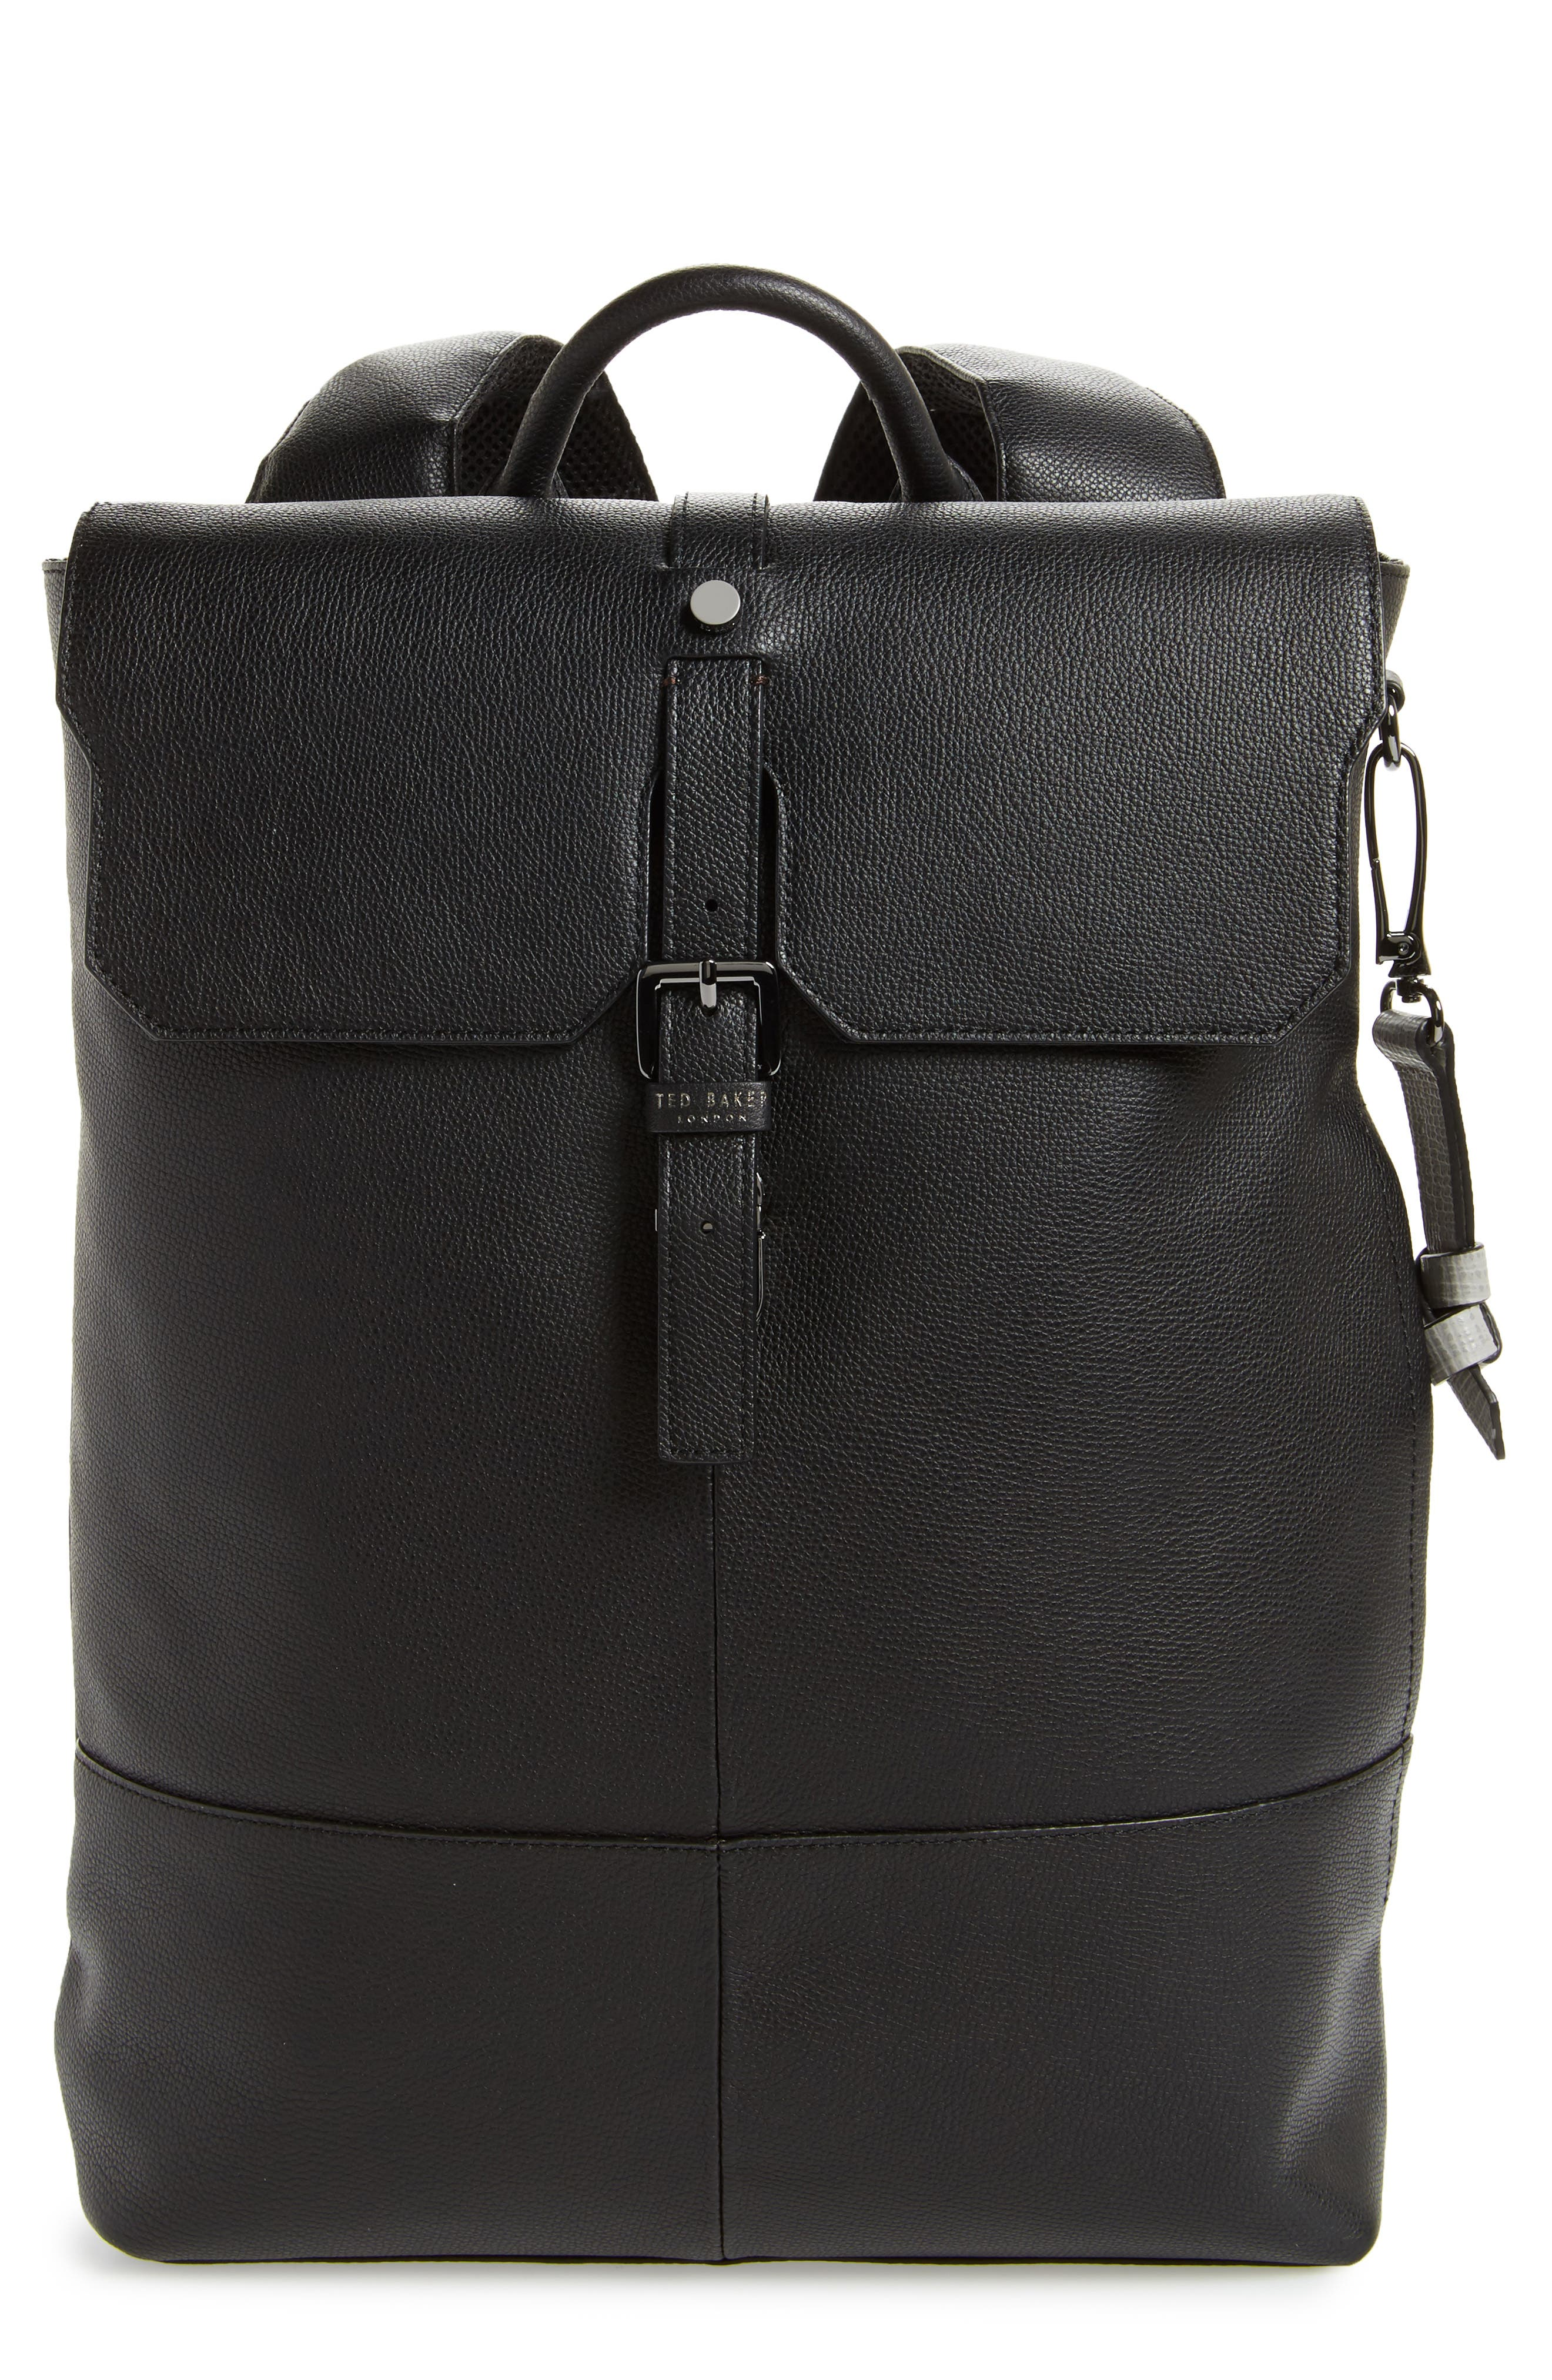 Beach Leather Backpack,                         Main,                         color, Black